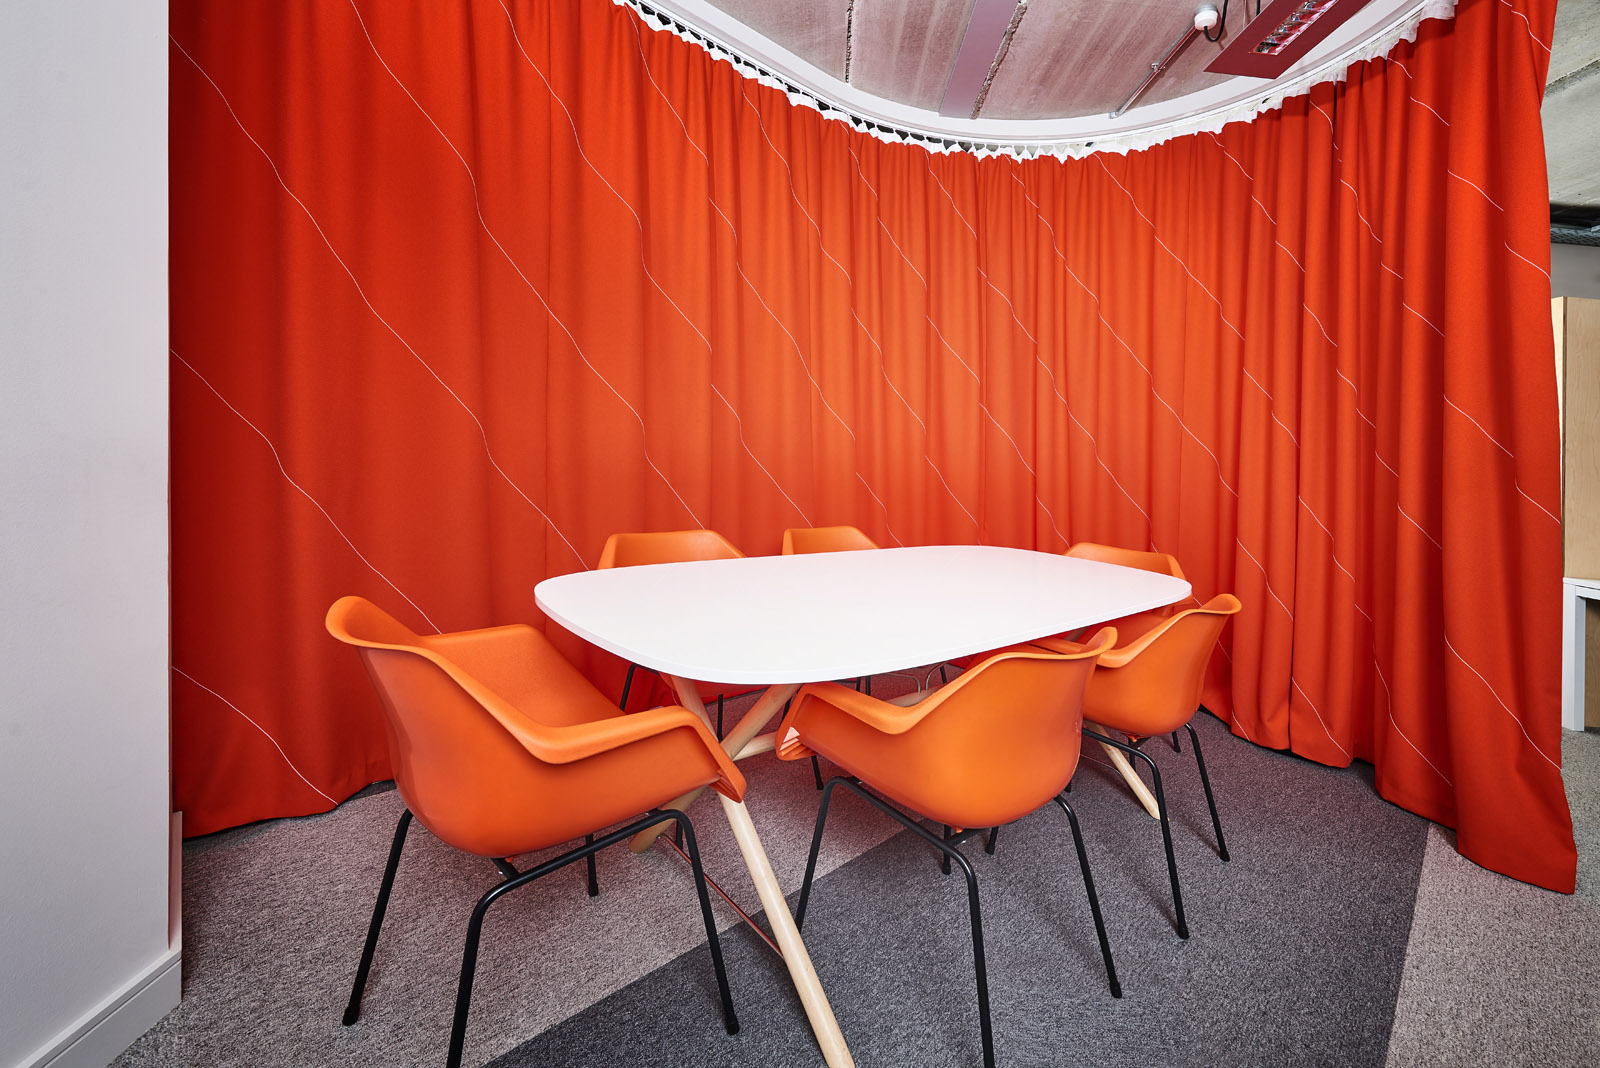 Projects_Office_PADDLE_curtain_orange.jpg